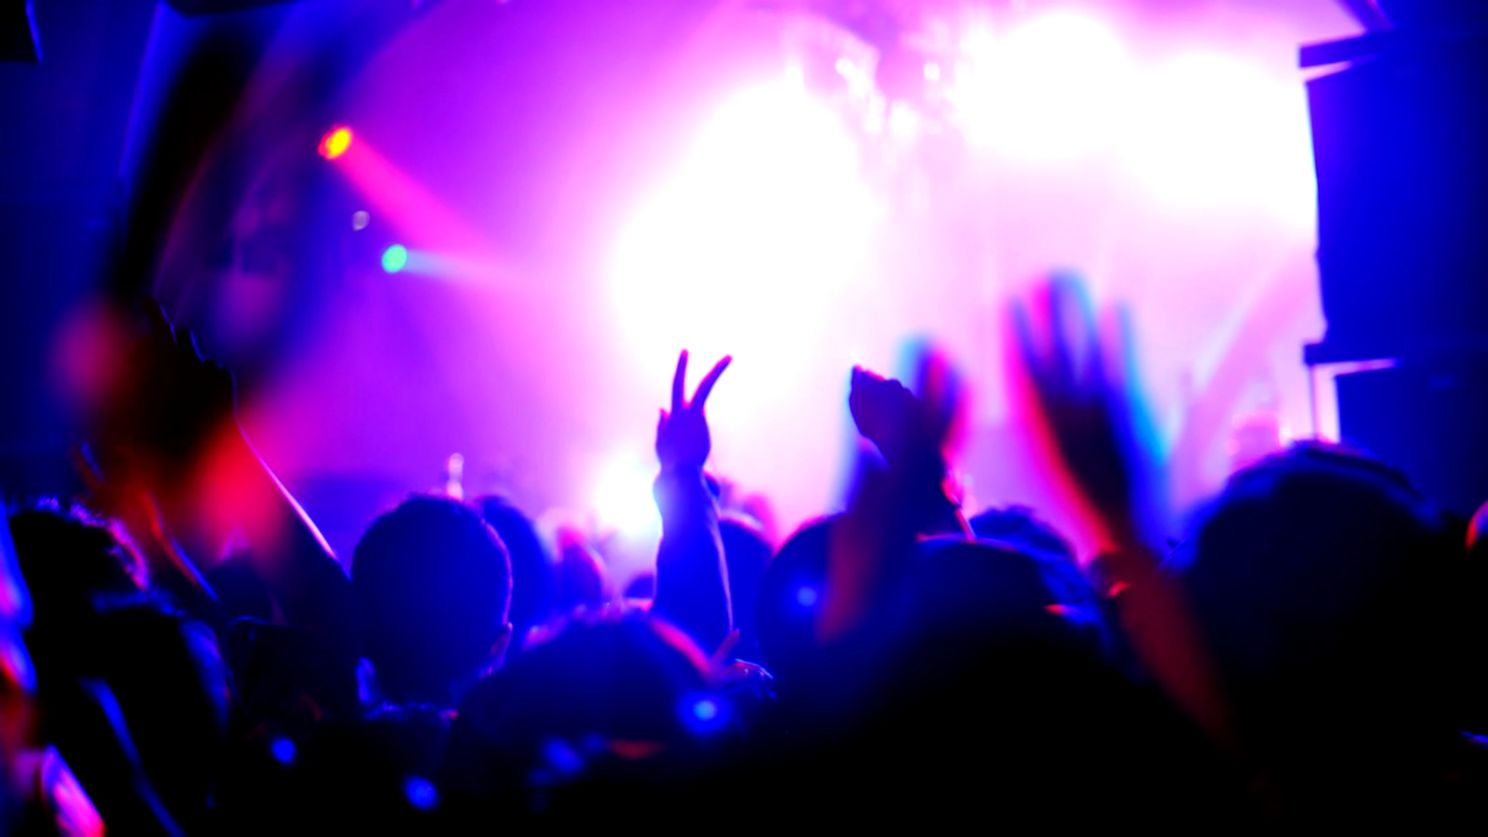 Dance On Club Music Hd Wallpaper | Wallpapers Master